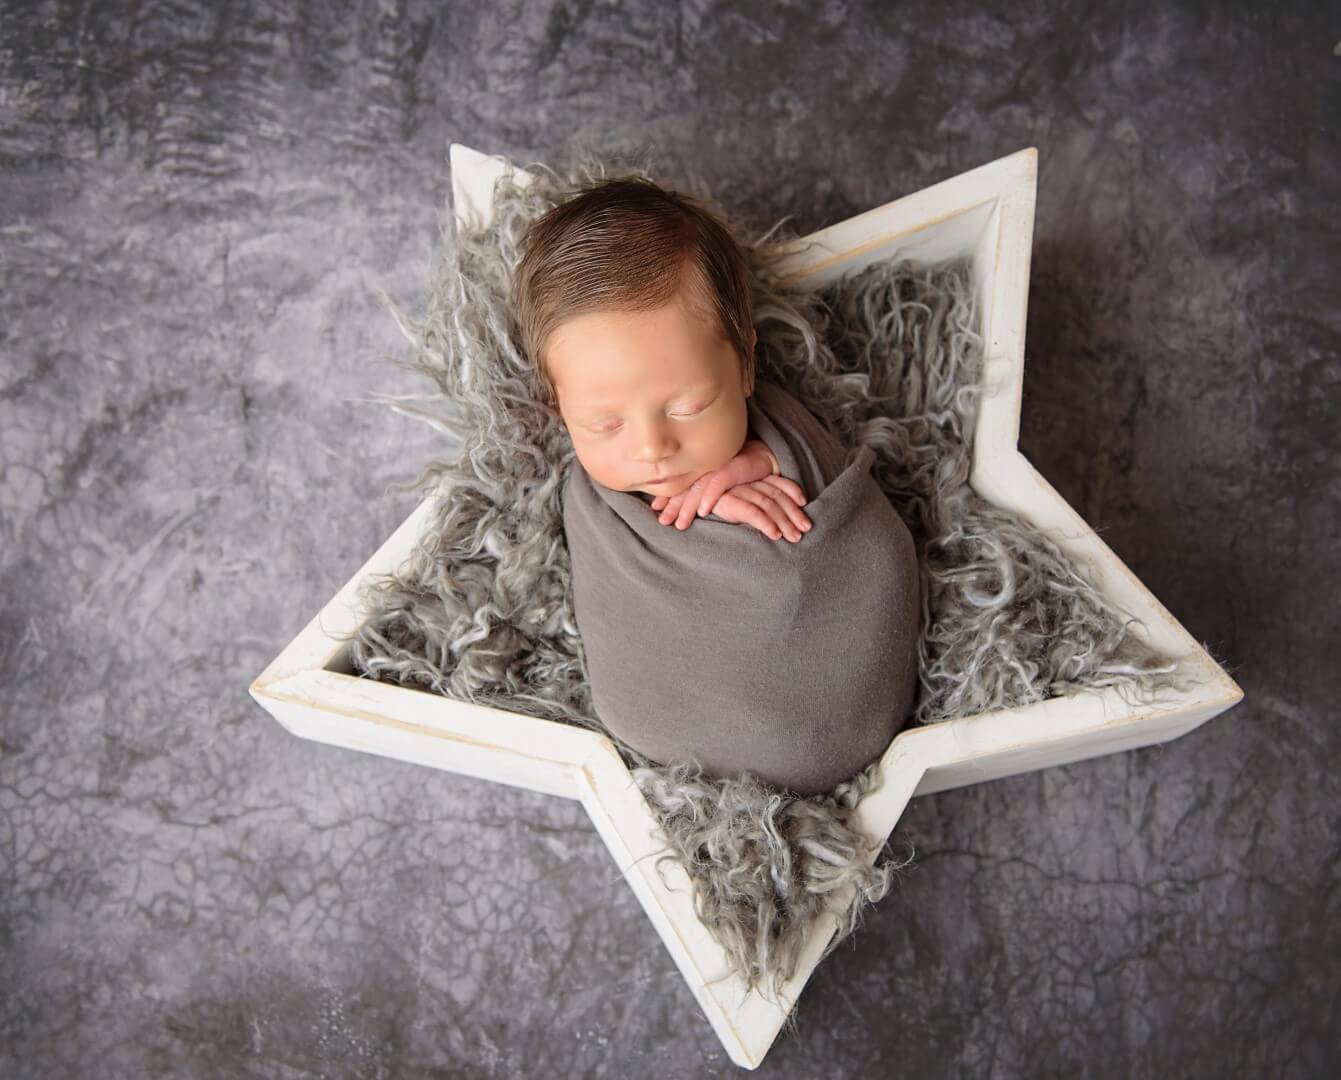 Photograph of a newborn baby in a gray blanket sleeping in a star shaped bed